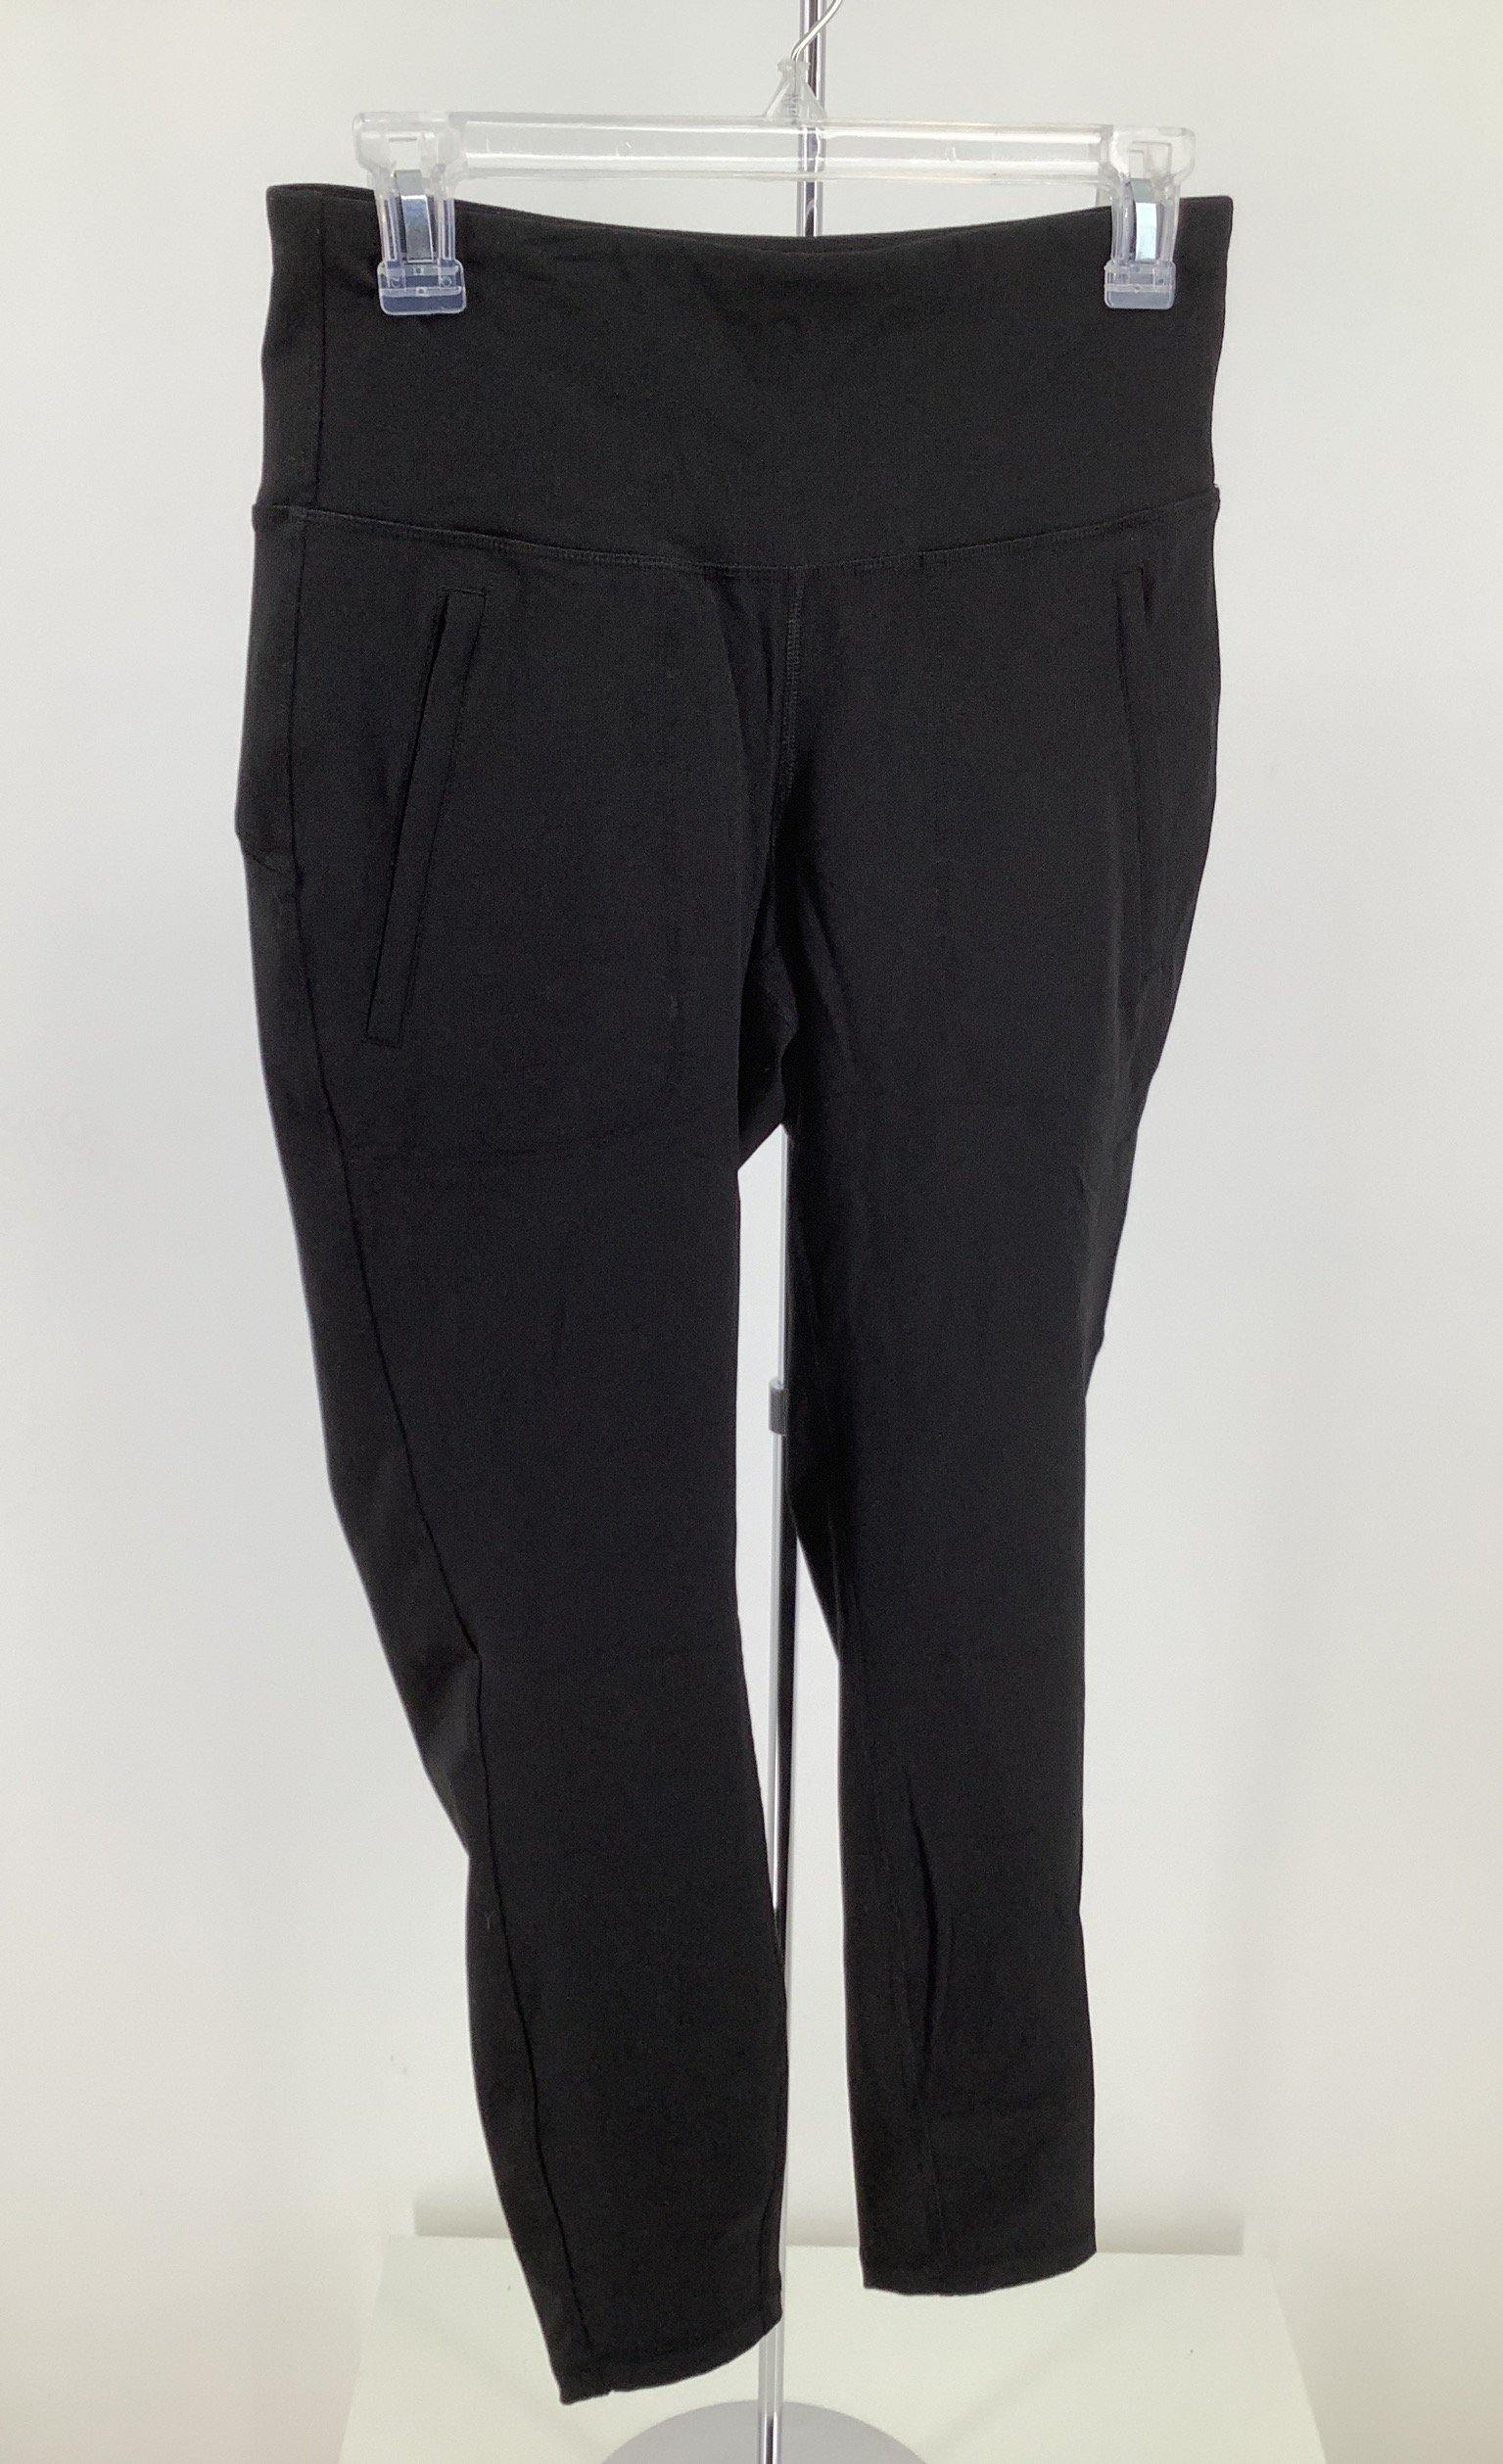 Primary Photo - brand: old navy , style: athletic capris , color: black , size: m , sku: 105-3221-17390